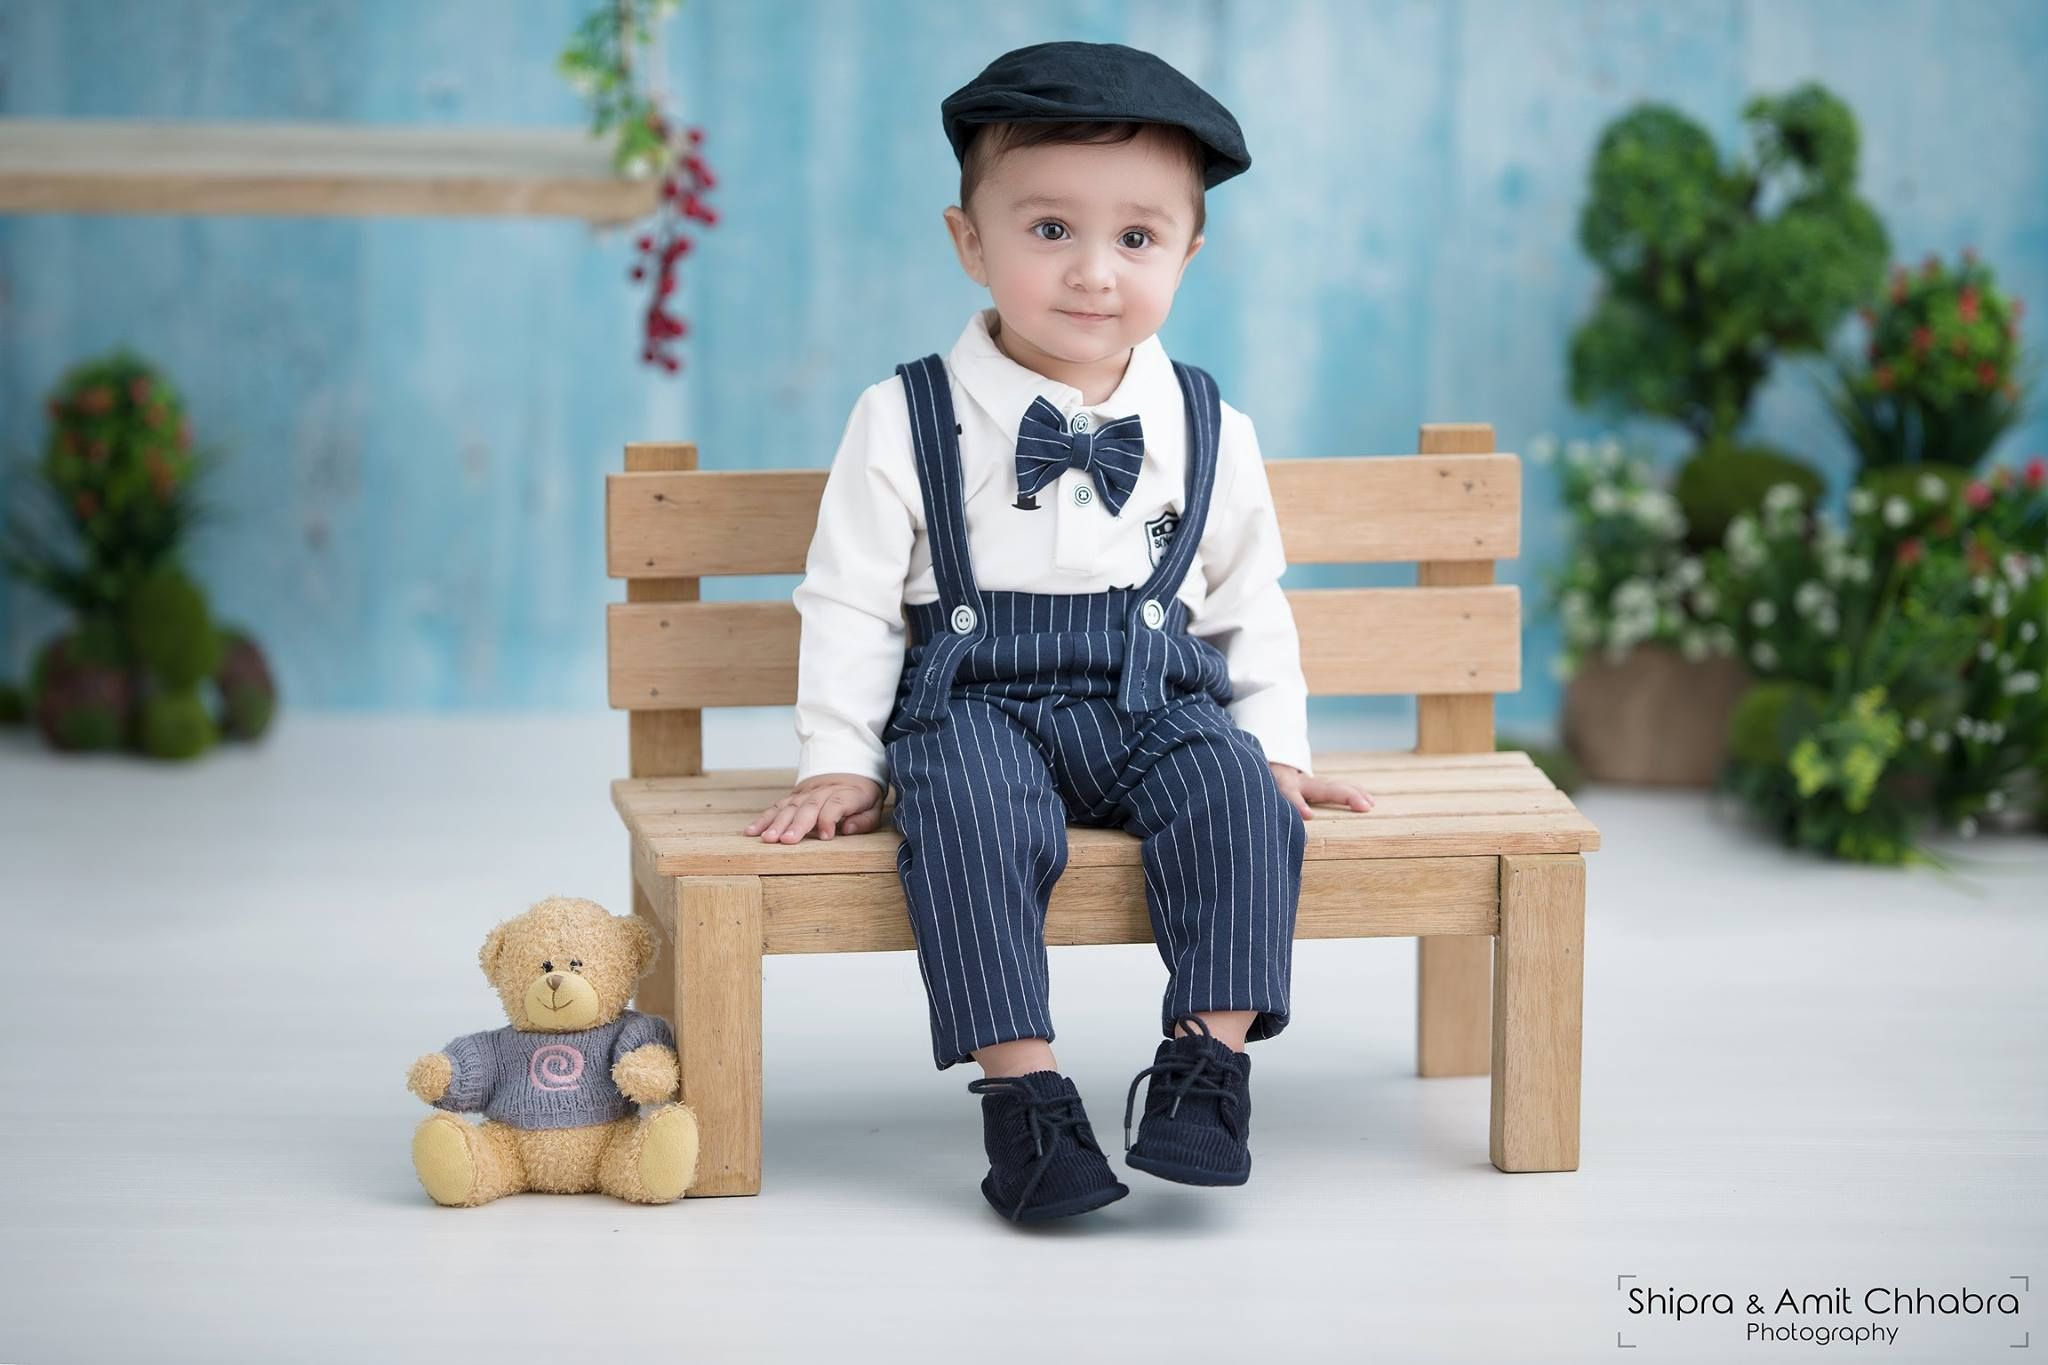 Infant photoshoot baby boy photoshoot little man vintage baby photoshoot ideas kids photos kids photography sets shipra amit chhabra